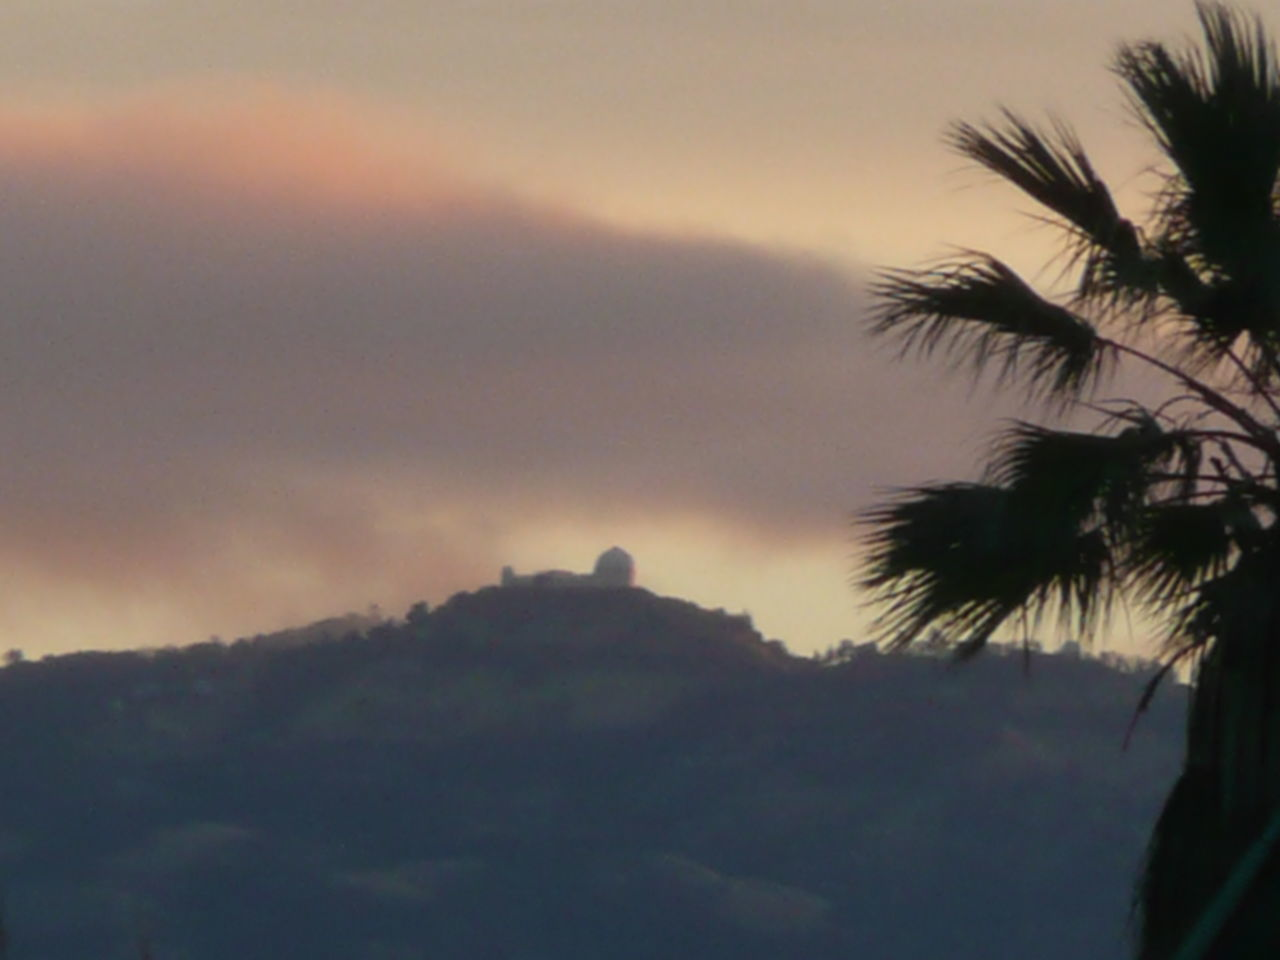 sunrise with palm tree in foreground and Mount Hamilton in background Historical Building Mount Hamilton Beauty In Nature Clear Sky Close-up Day Growth Historical Landscape Lick Observatory Mountain Mountain Range Nature No People Outdoors Palm Tree Scenics Serene Outdoors Sky Sunset Tranquil Scene Tranquility Travel Destinations Tree Tropical Plants